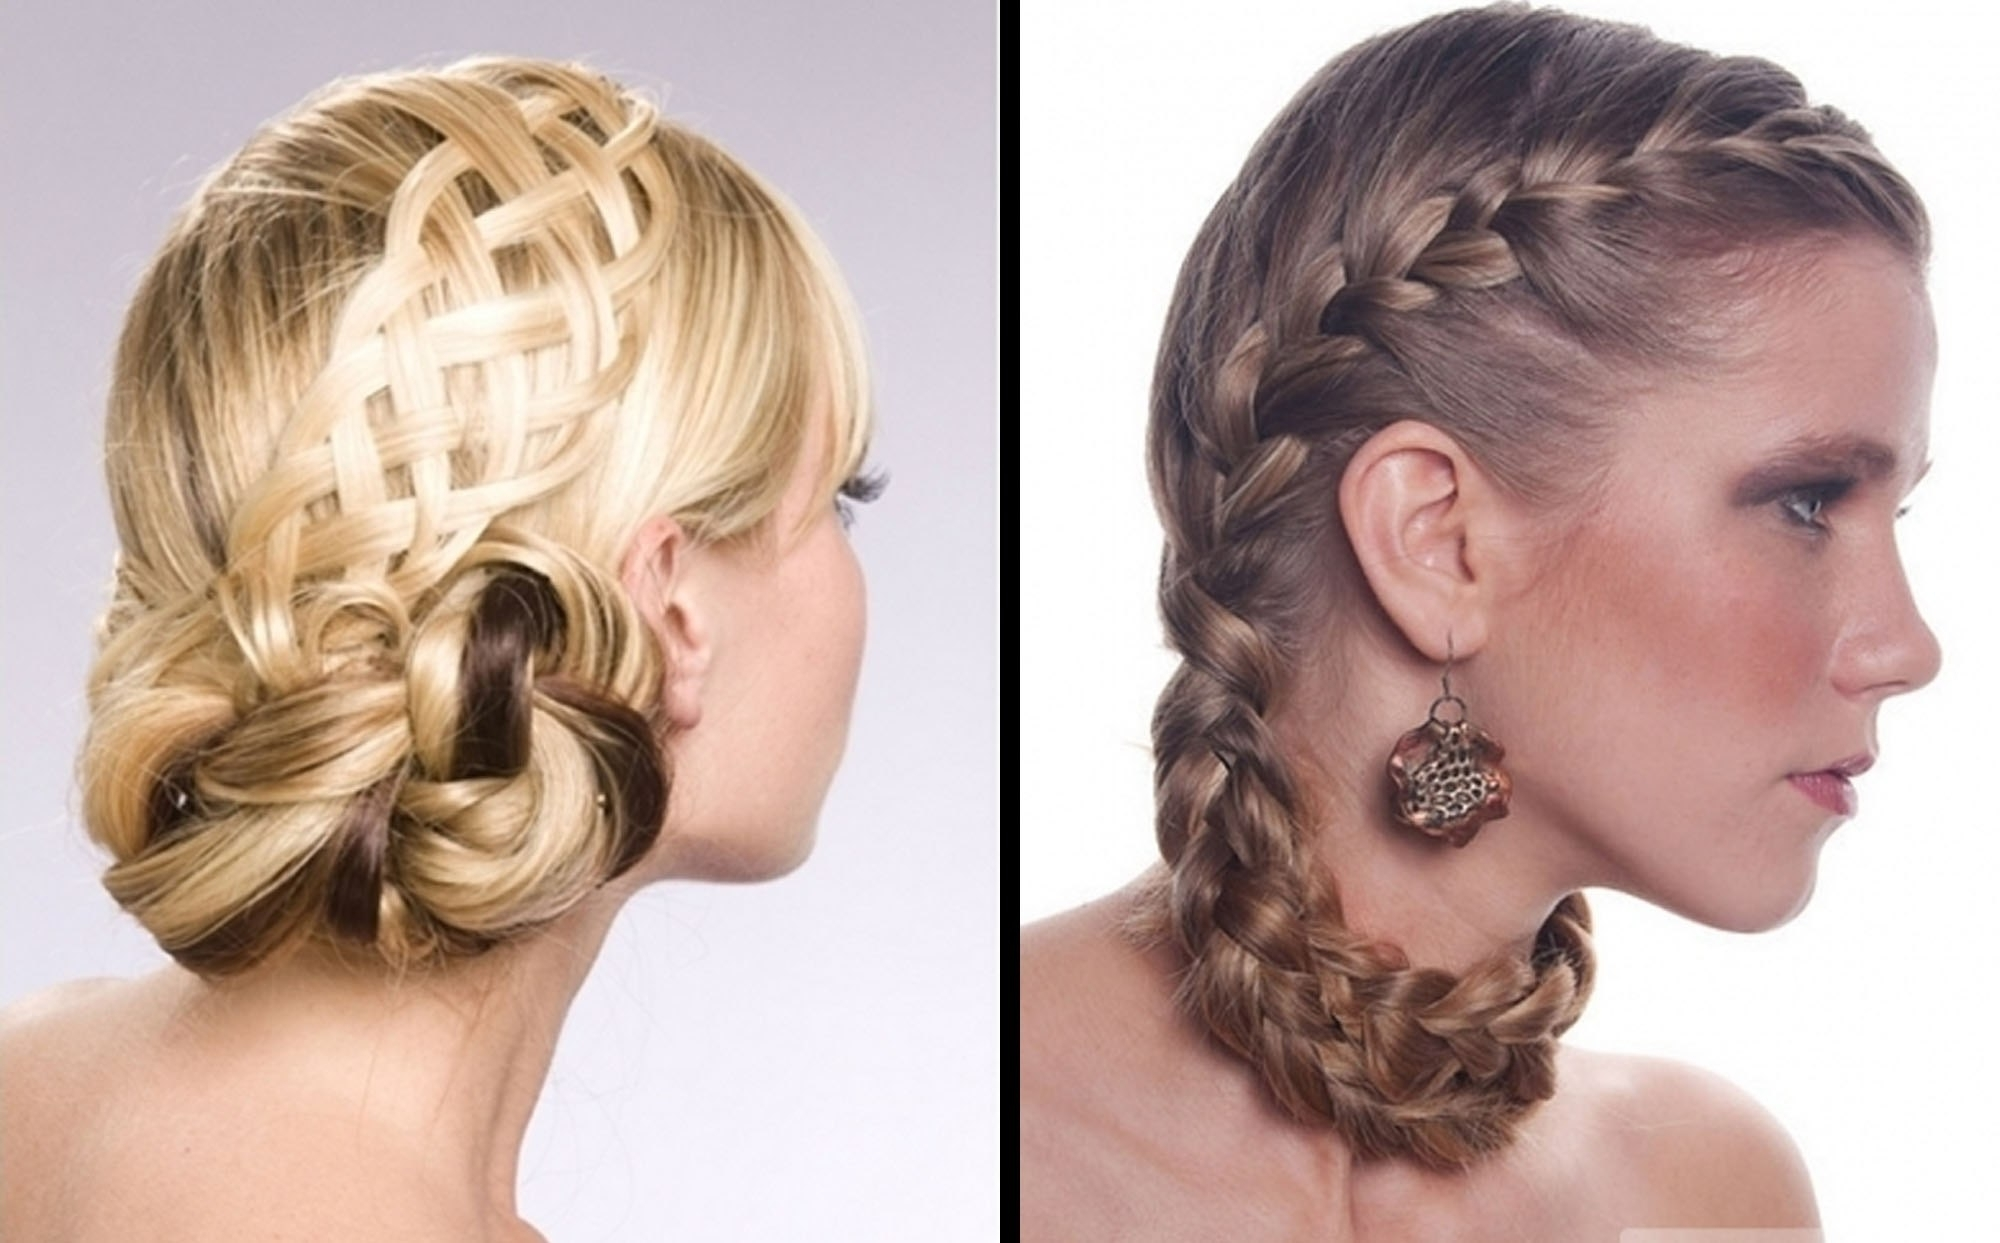 Hairstyles Prom For Short Hair Easy | Medium Hair Styles Ideas – 35491 Within Easy Hair Updo Hairstyles (View 12 of 15)